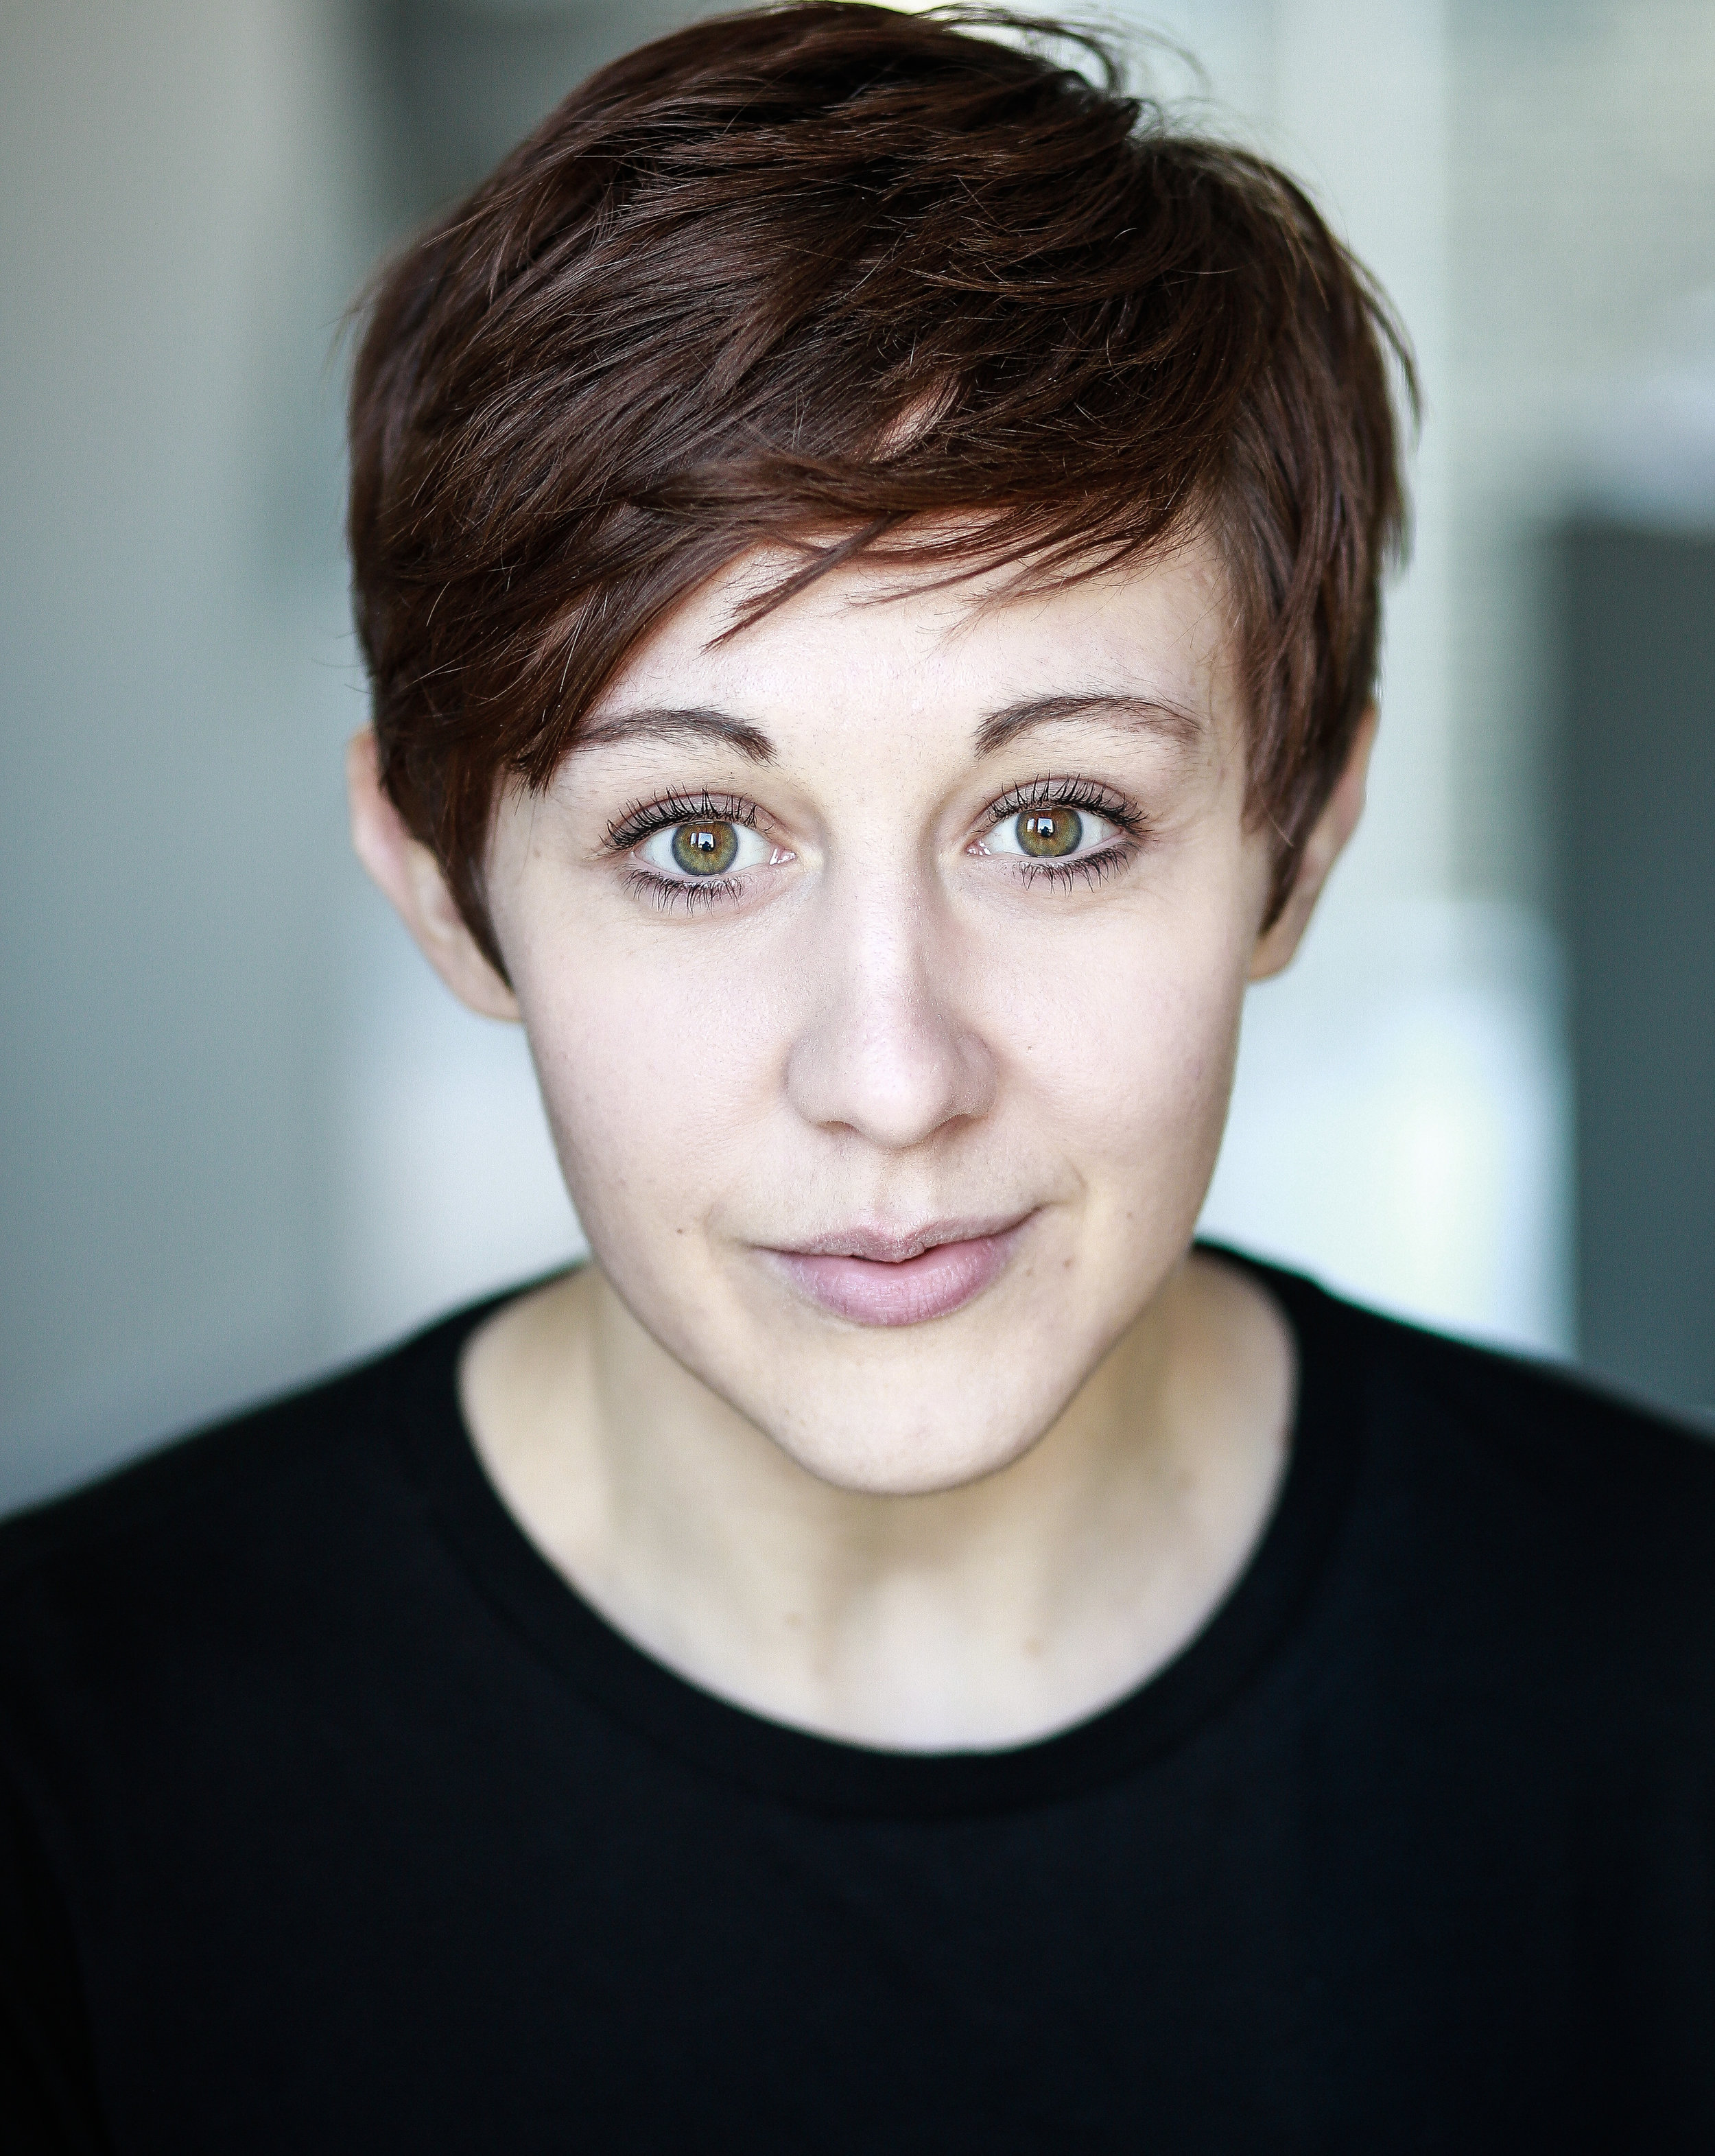 Charlotte Josephine - Actress and Writer for theatre. Her credits include BITCH BOXER which won the Soho Theatre Young Writers Award 2012 and BLUSH, which has a sell out ran at the Edinburgh Fringe 2017.